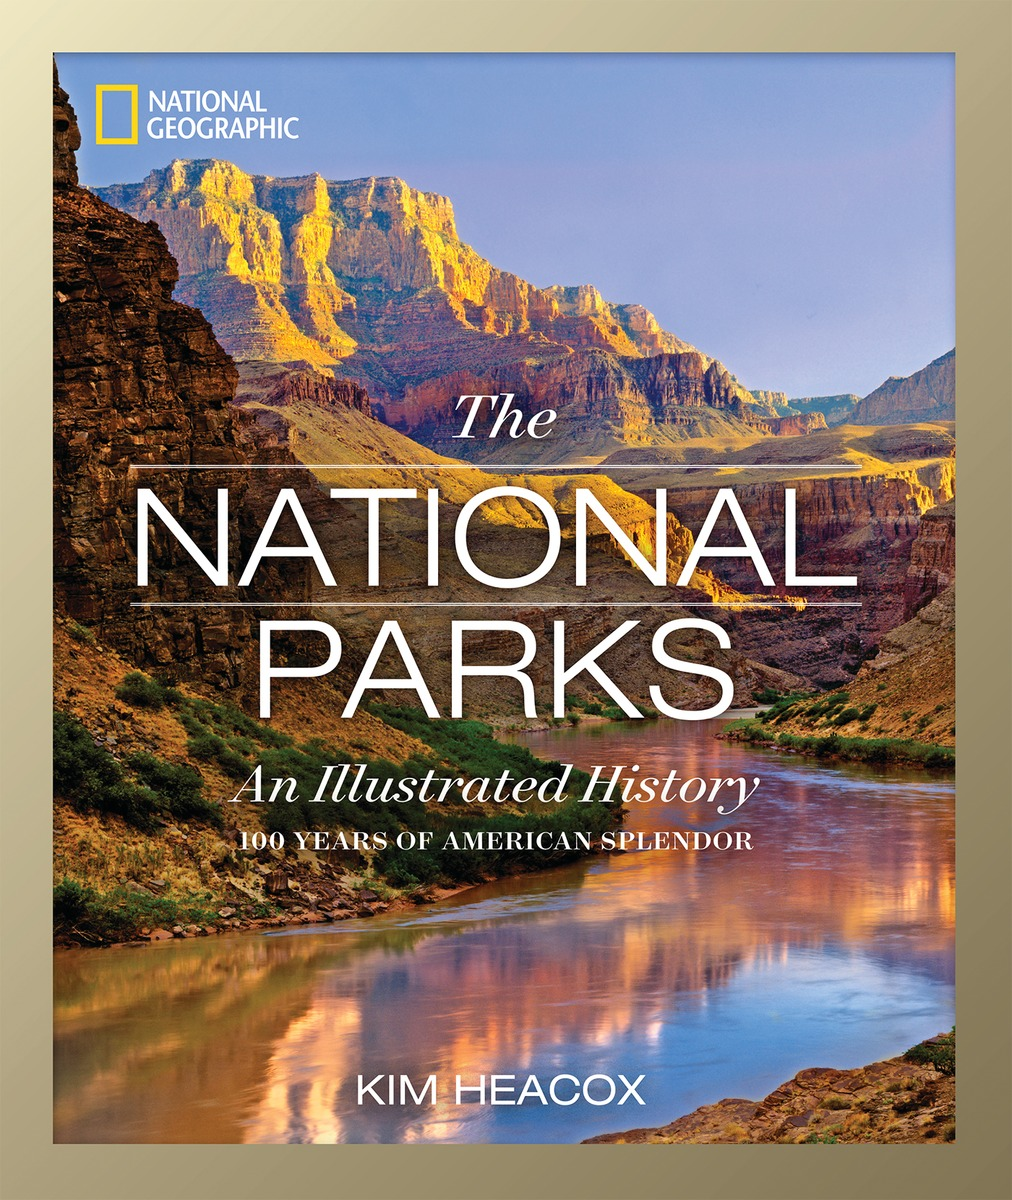 NGEO NATIONAL PARKS.